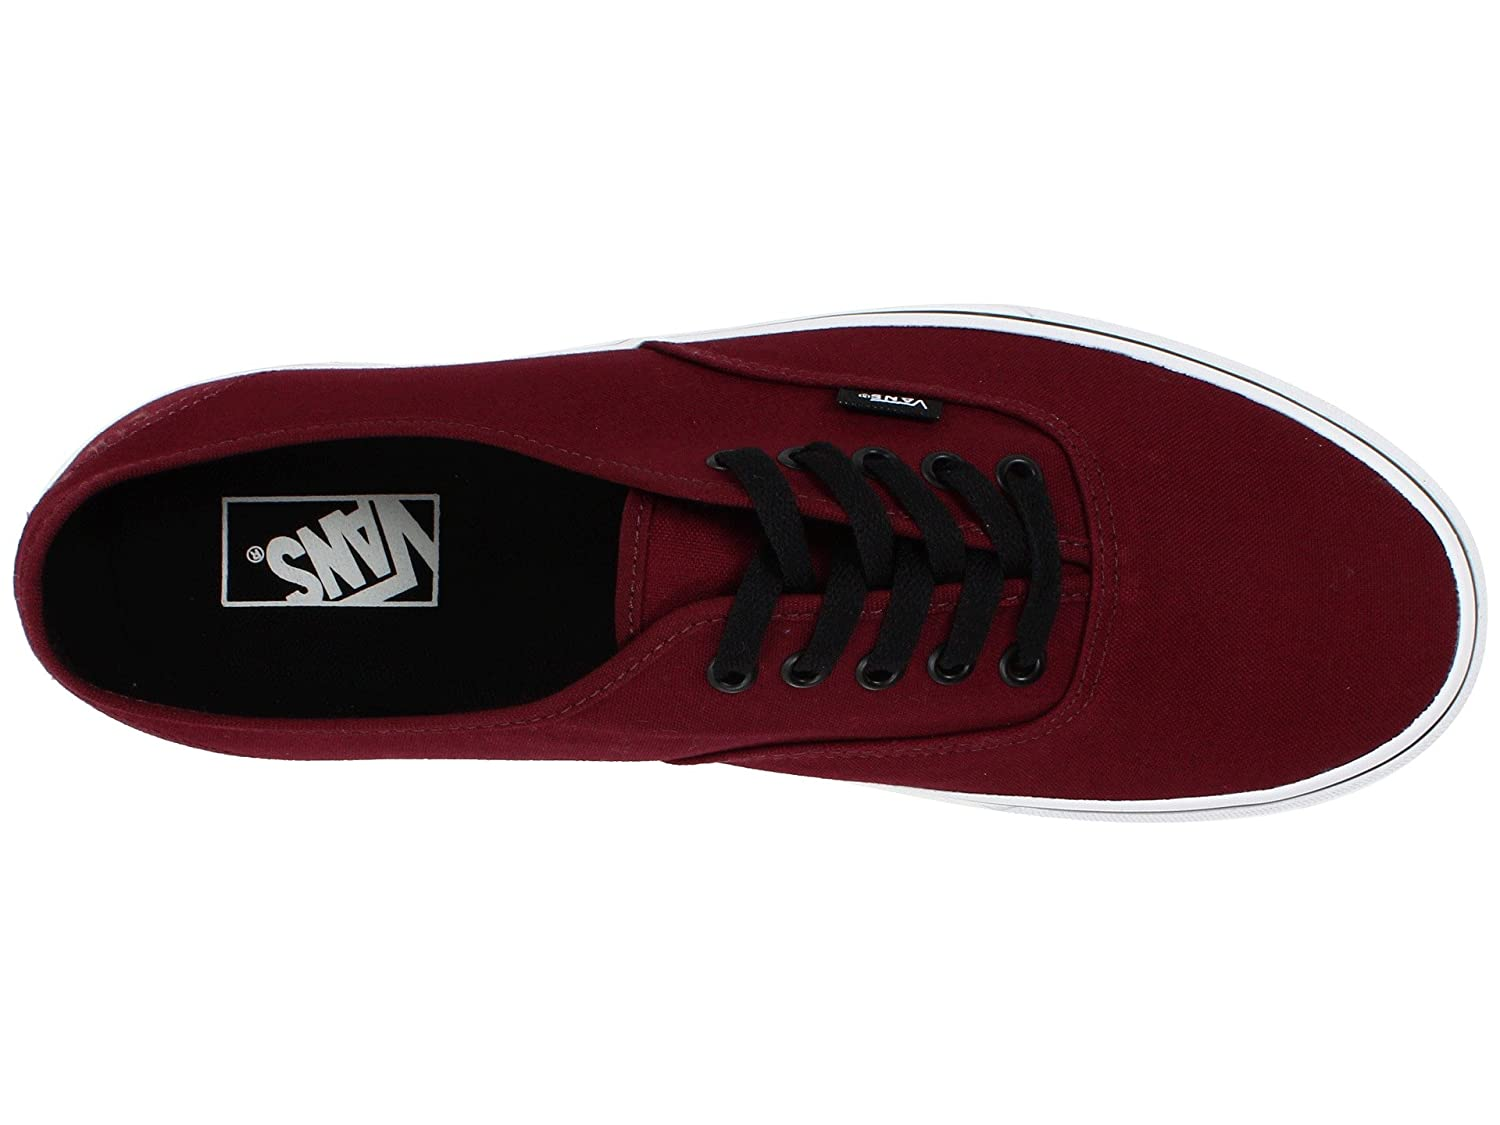 VANS Unisex Authentic Black Canvas VN000EE3BLK Skate Shoe B01N8ZGDMA 14.5 B(M) US Women / 13 D(M) US Men|Port Royale Red/Black